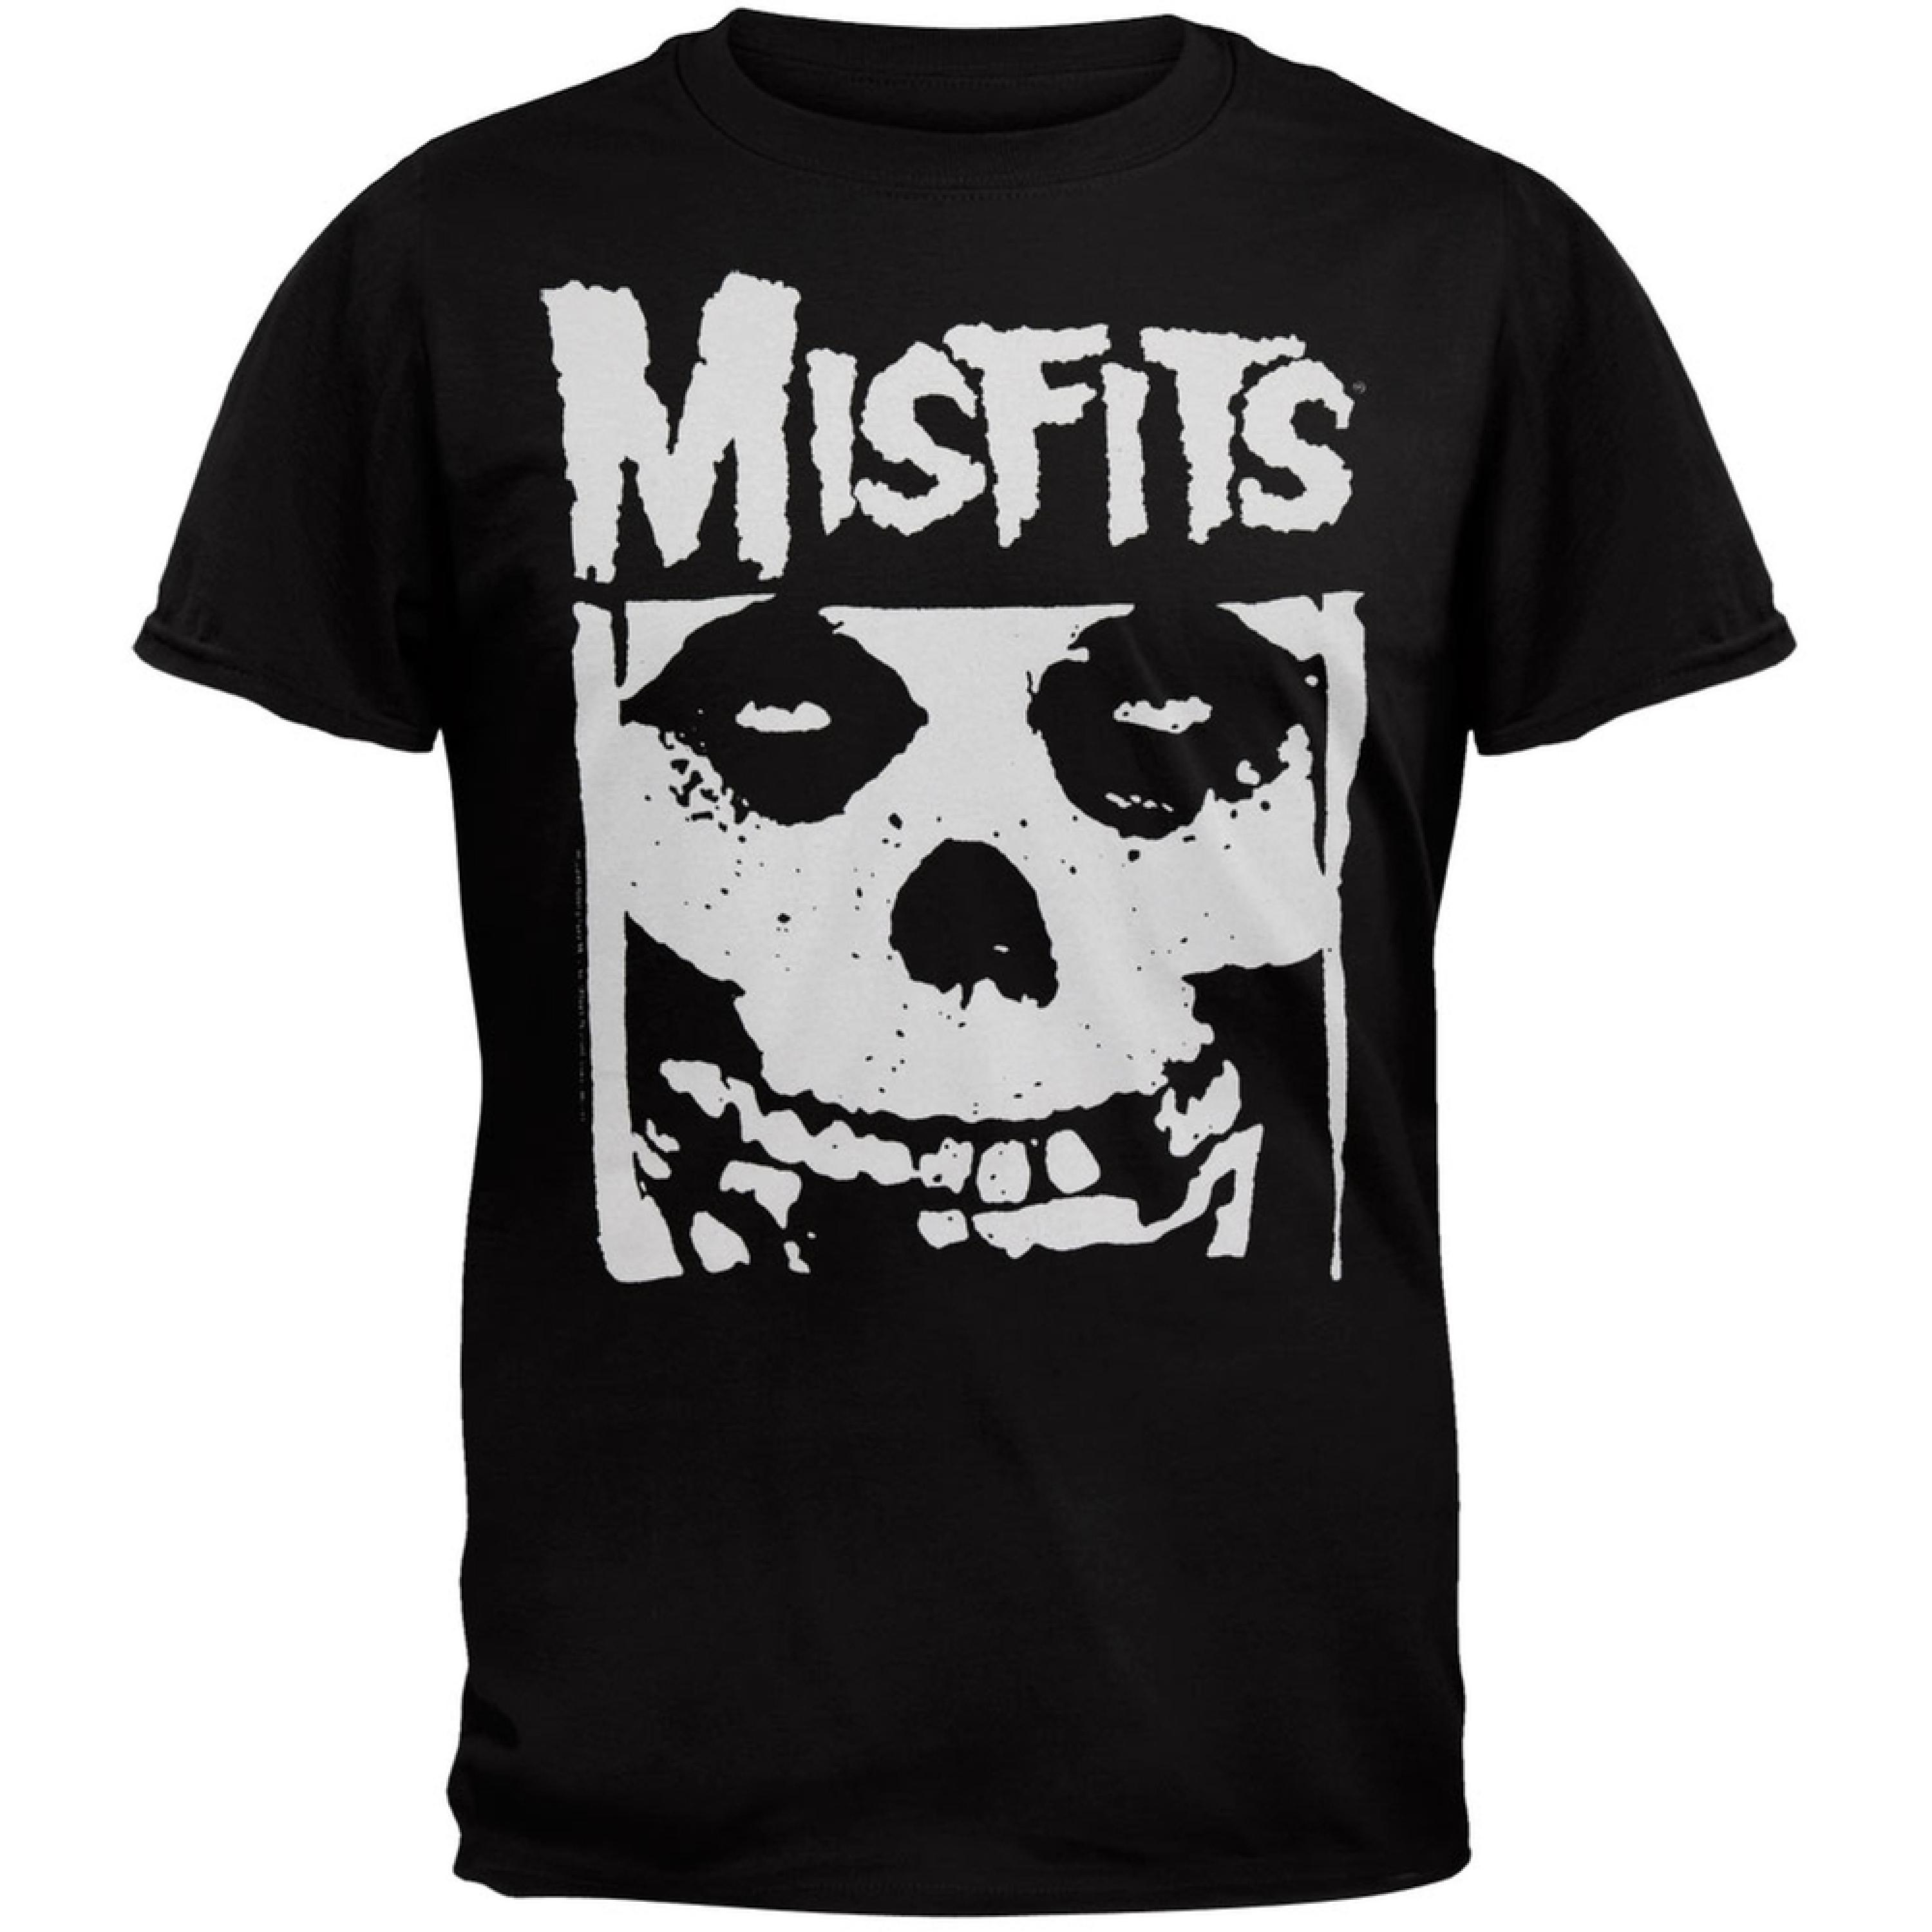 Misfits - Close Up T-Shirt